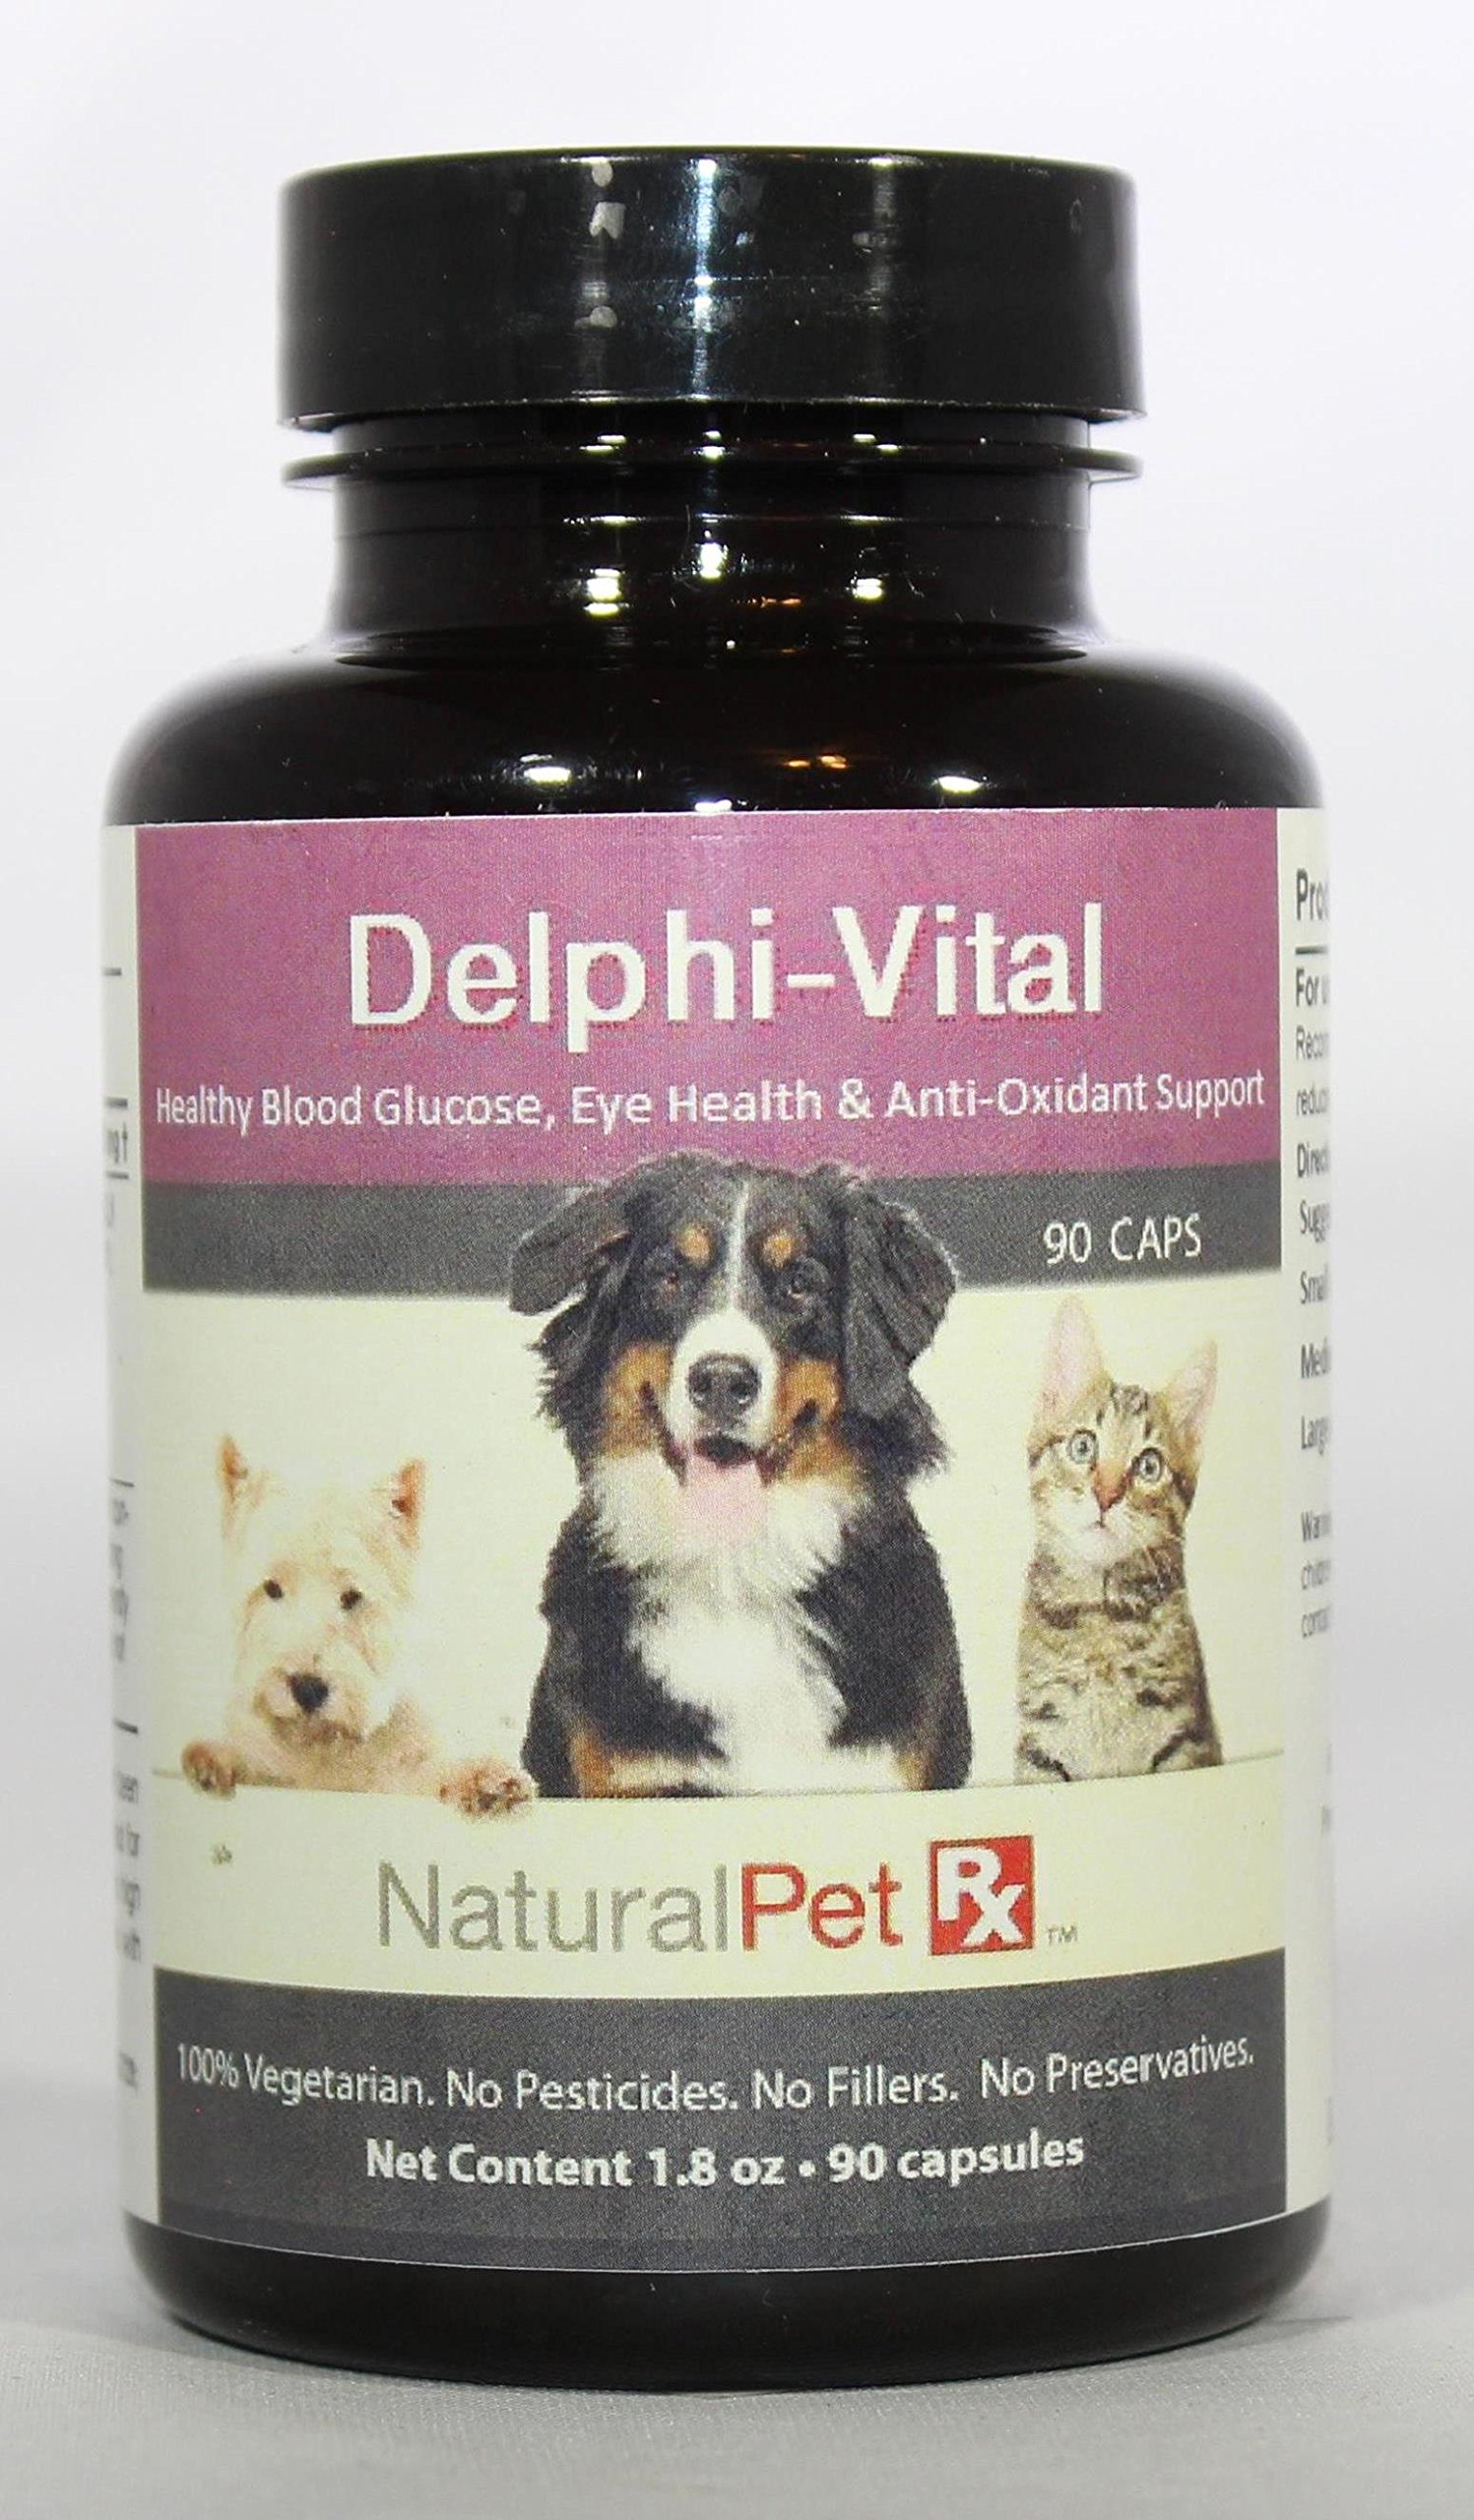 Natural Pet RX Delphi-Vital Blood Glucose, Eye & Anti-Oxidant Support (90 Capsules) by Natural Pet Rx